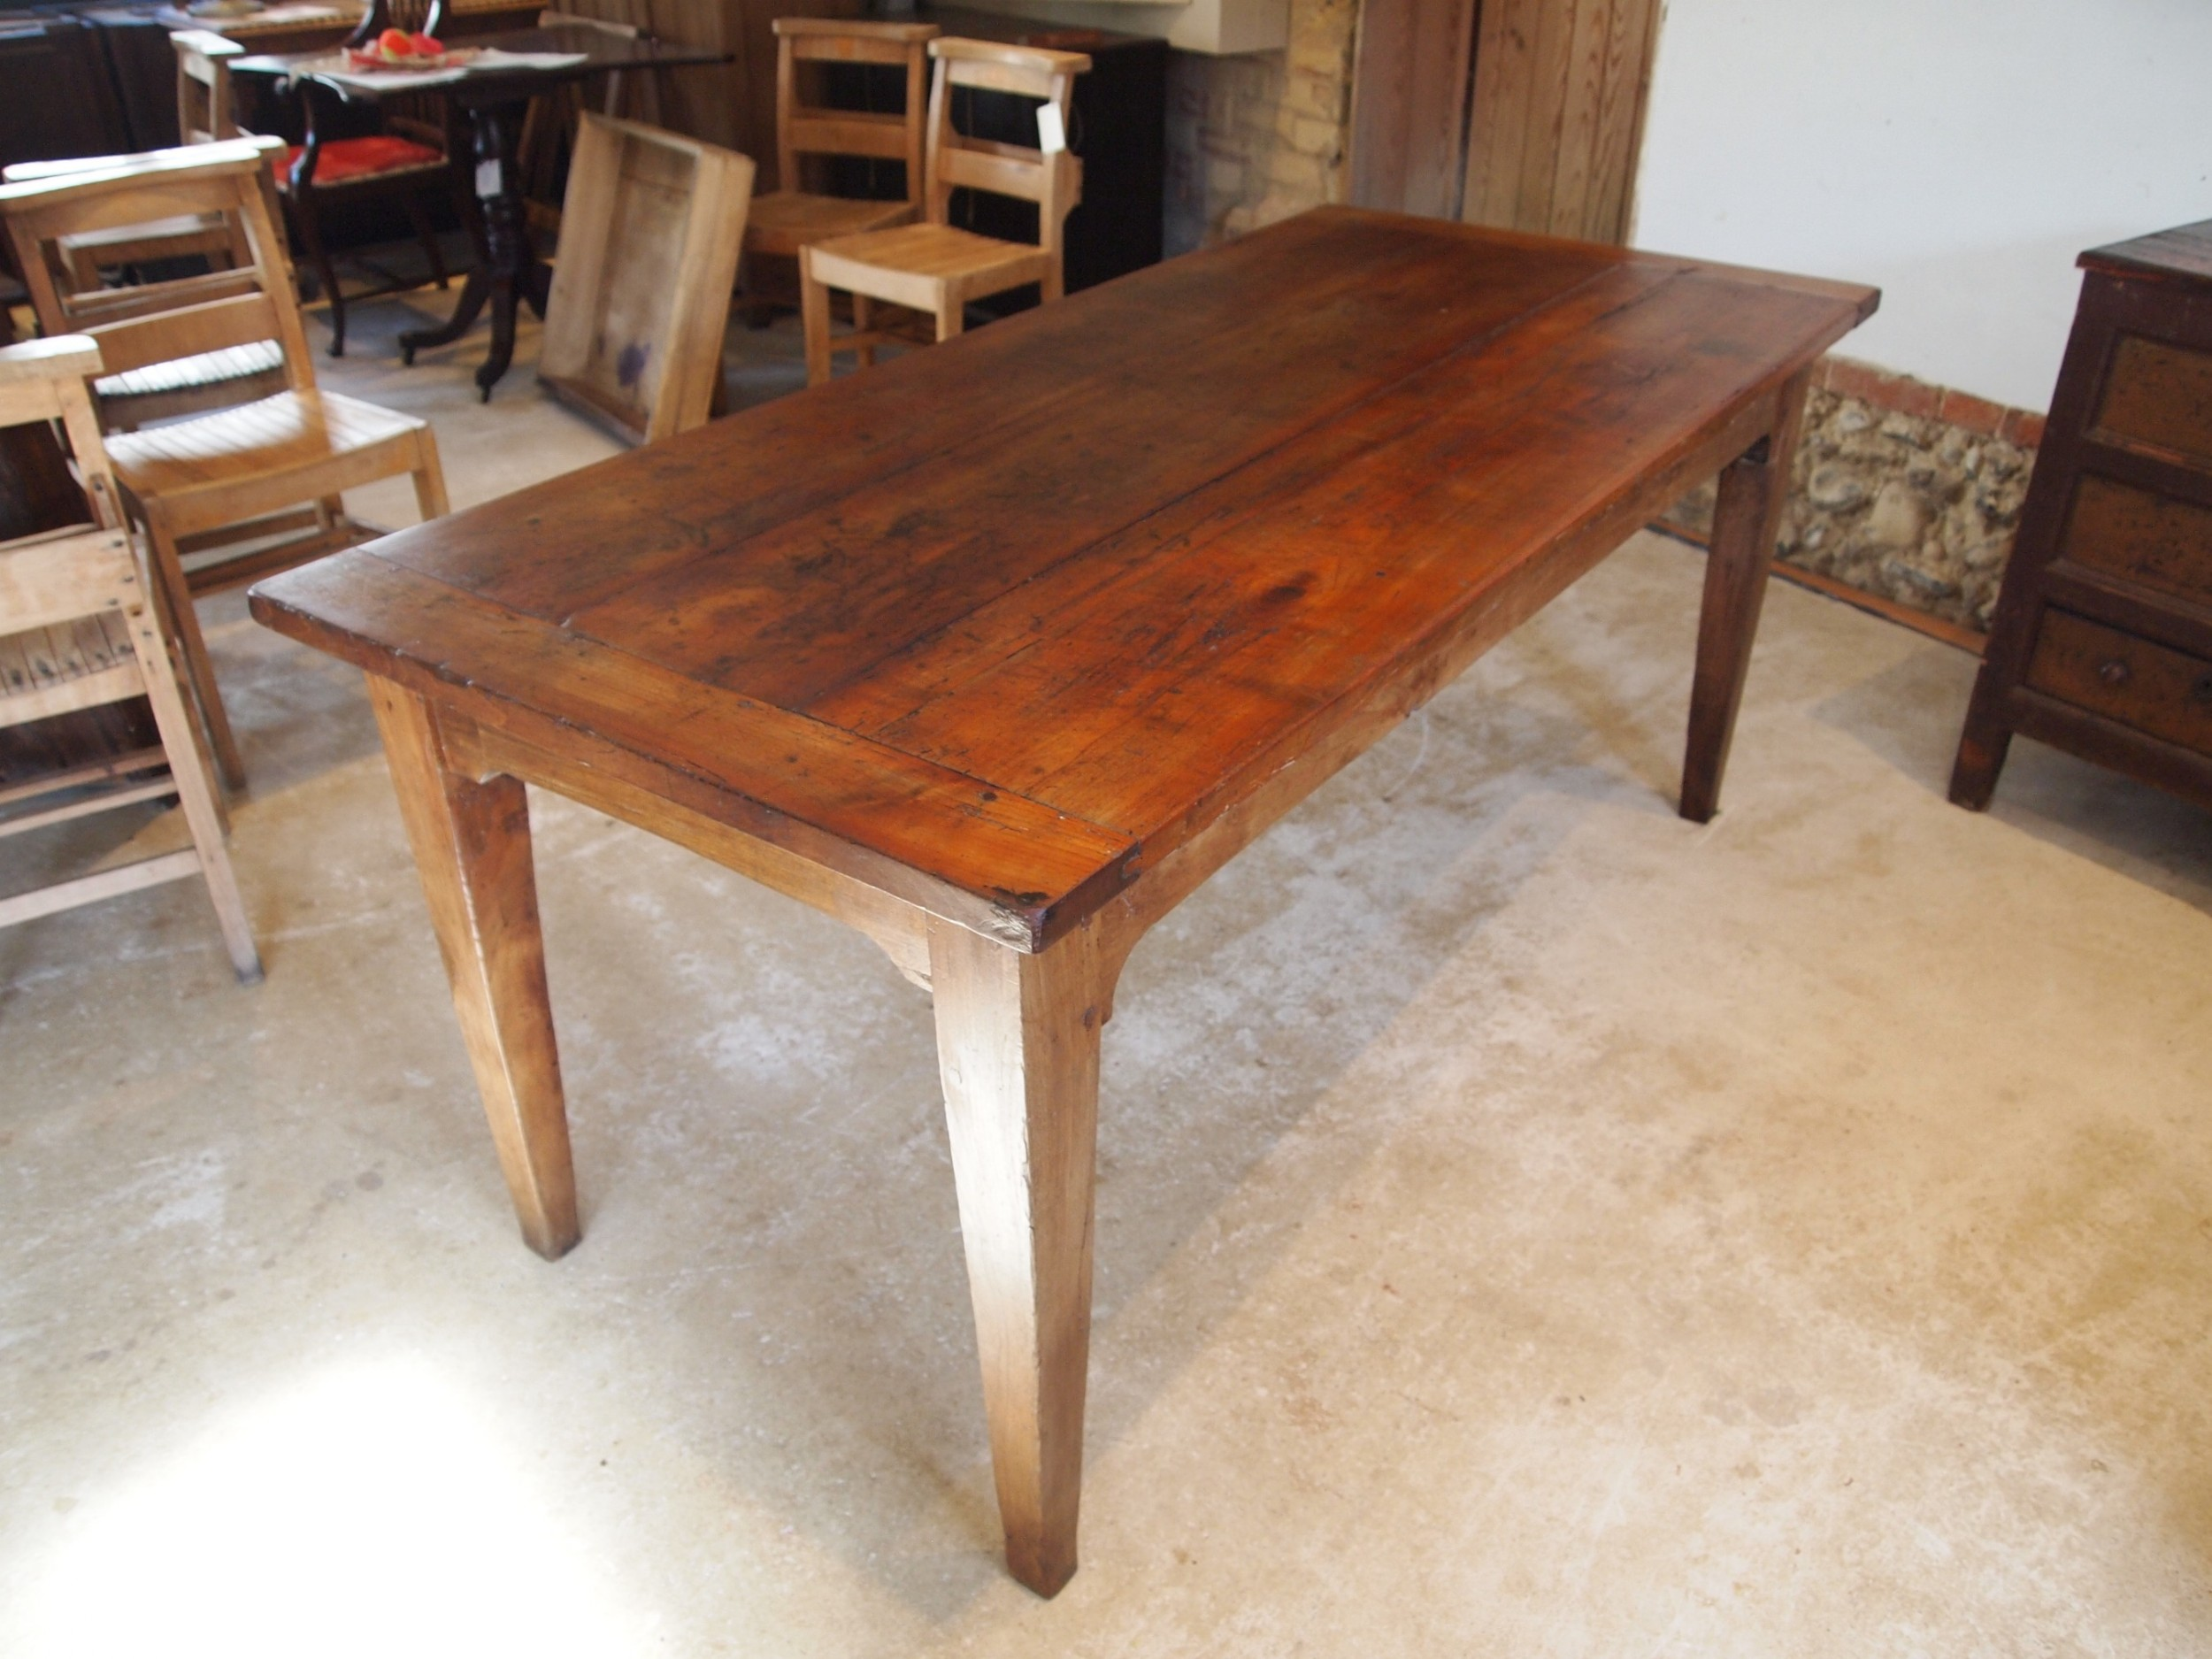 table french cherry wood refectory farmhouse dining c1850